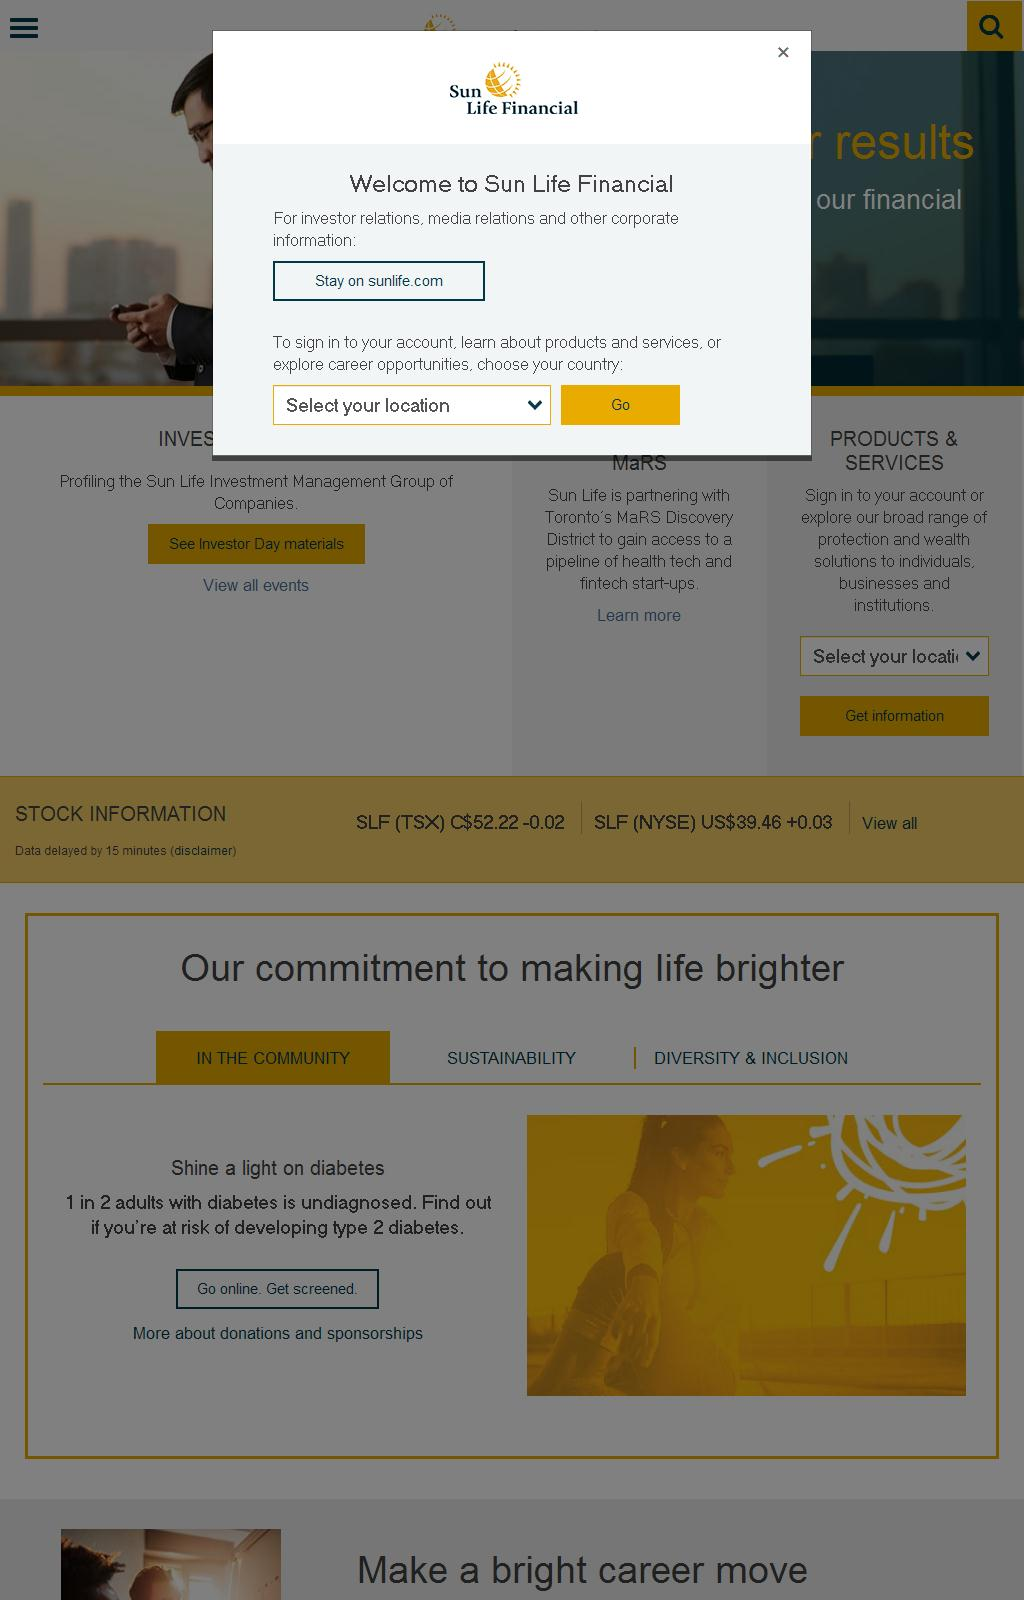 Sun Life Financial - Sun Life Financial Home – financial services company, financial planning company